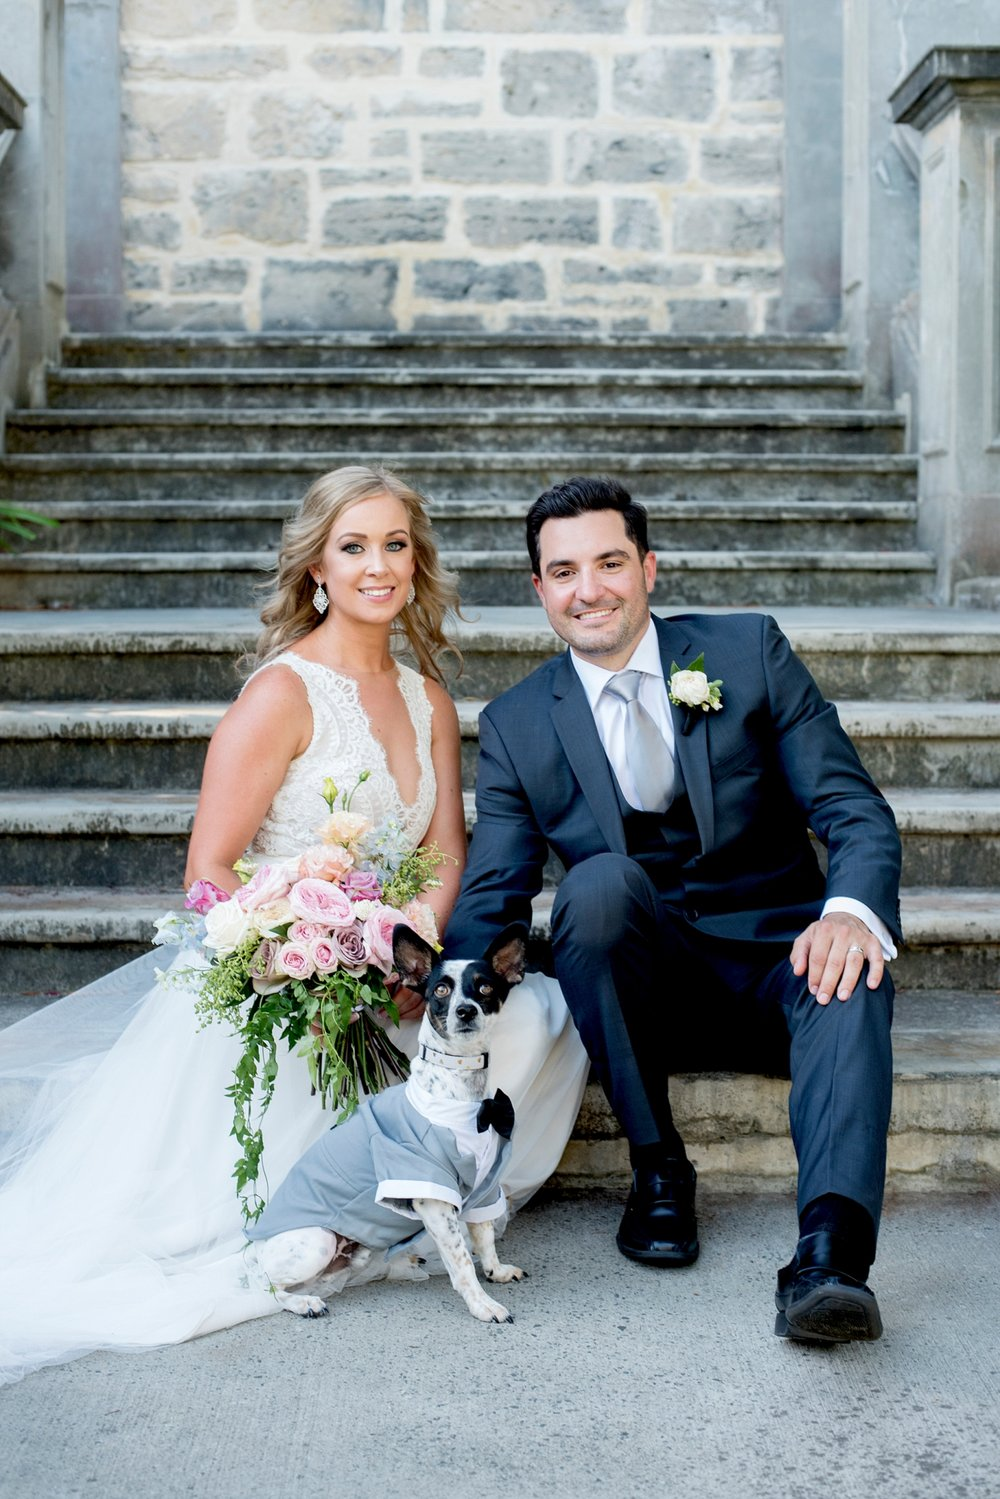 36_dog as ring bearer with couple wedding perth.jpg